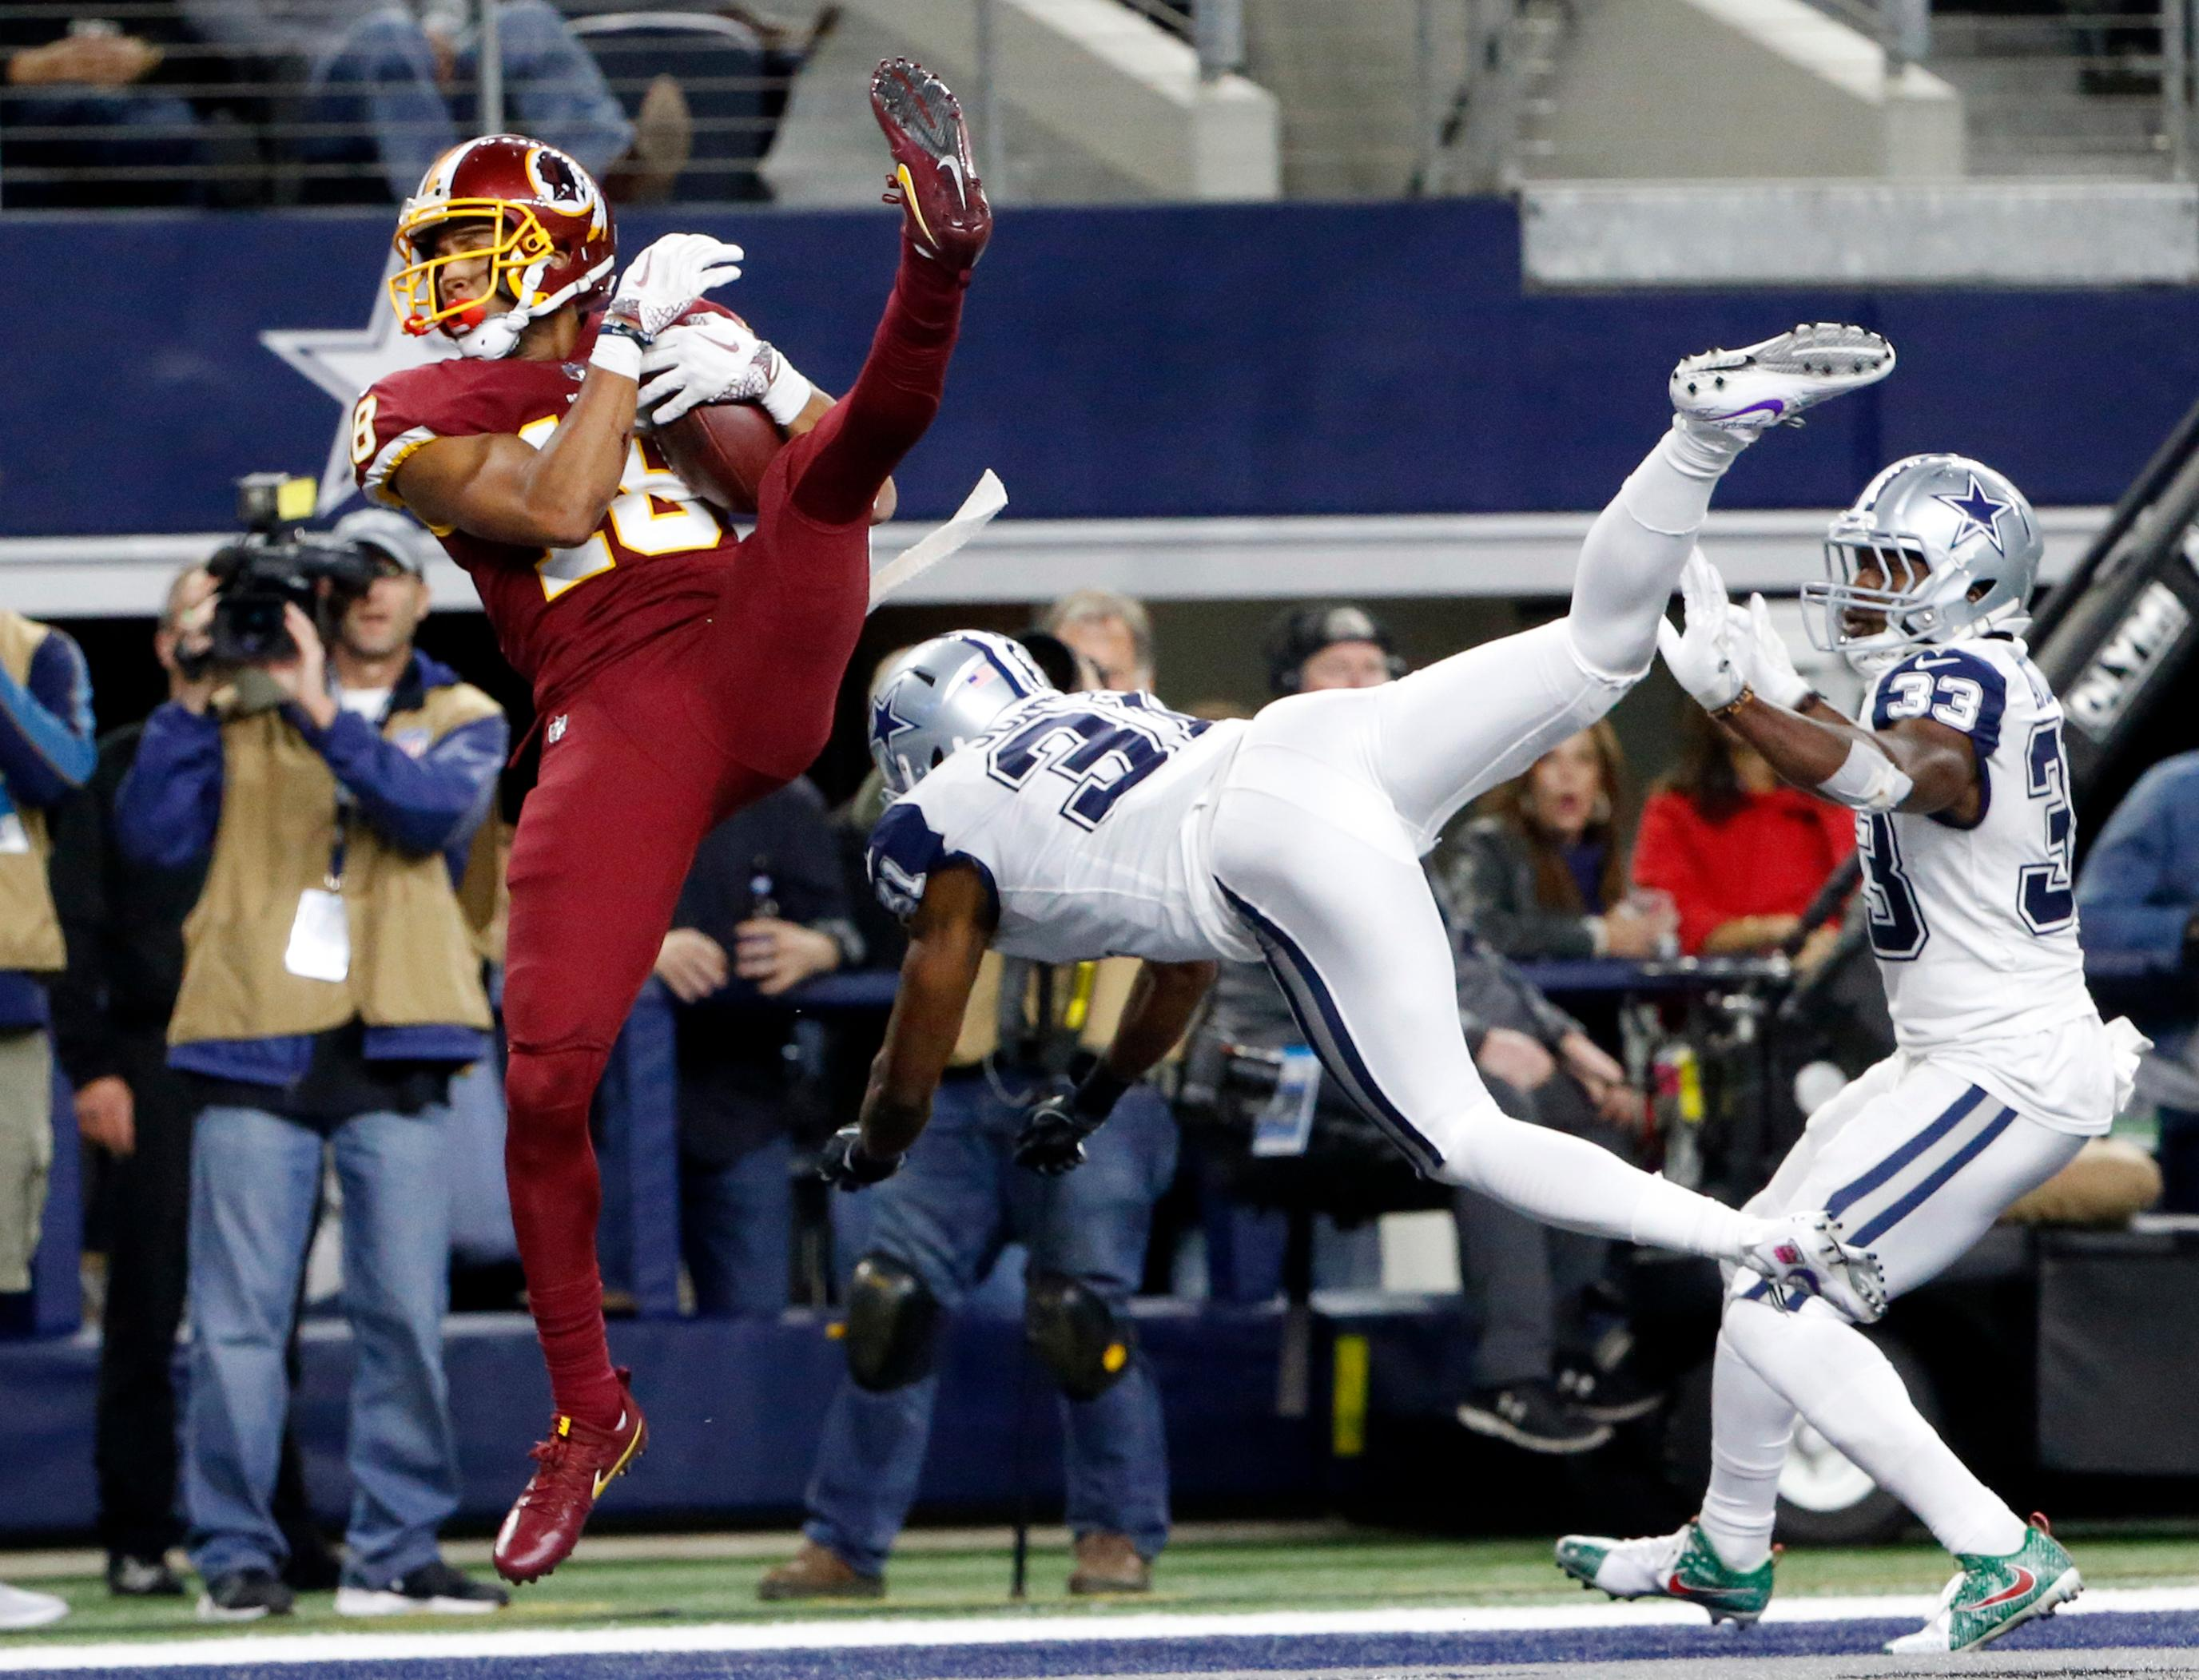 Washington Redskins' Josh Doctson (18) comes down with a touchdown catch in front of Dallas Cowboys safety Byron Jones (31) and Chidobe Awuzie (33) in the second half of an NFL football game, Thursday, Nov. 30, 2017, in Arlington, Texas. (AP Photo/Michael Ainsworth)